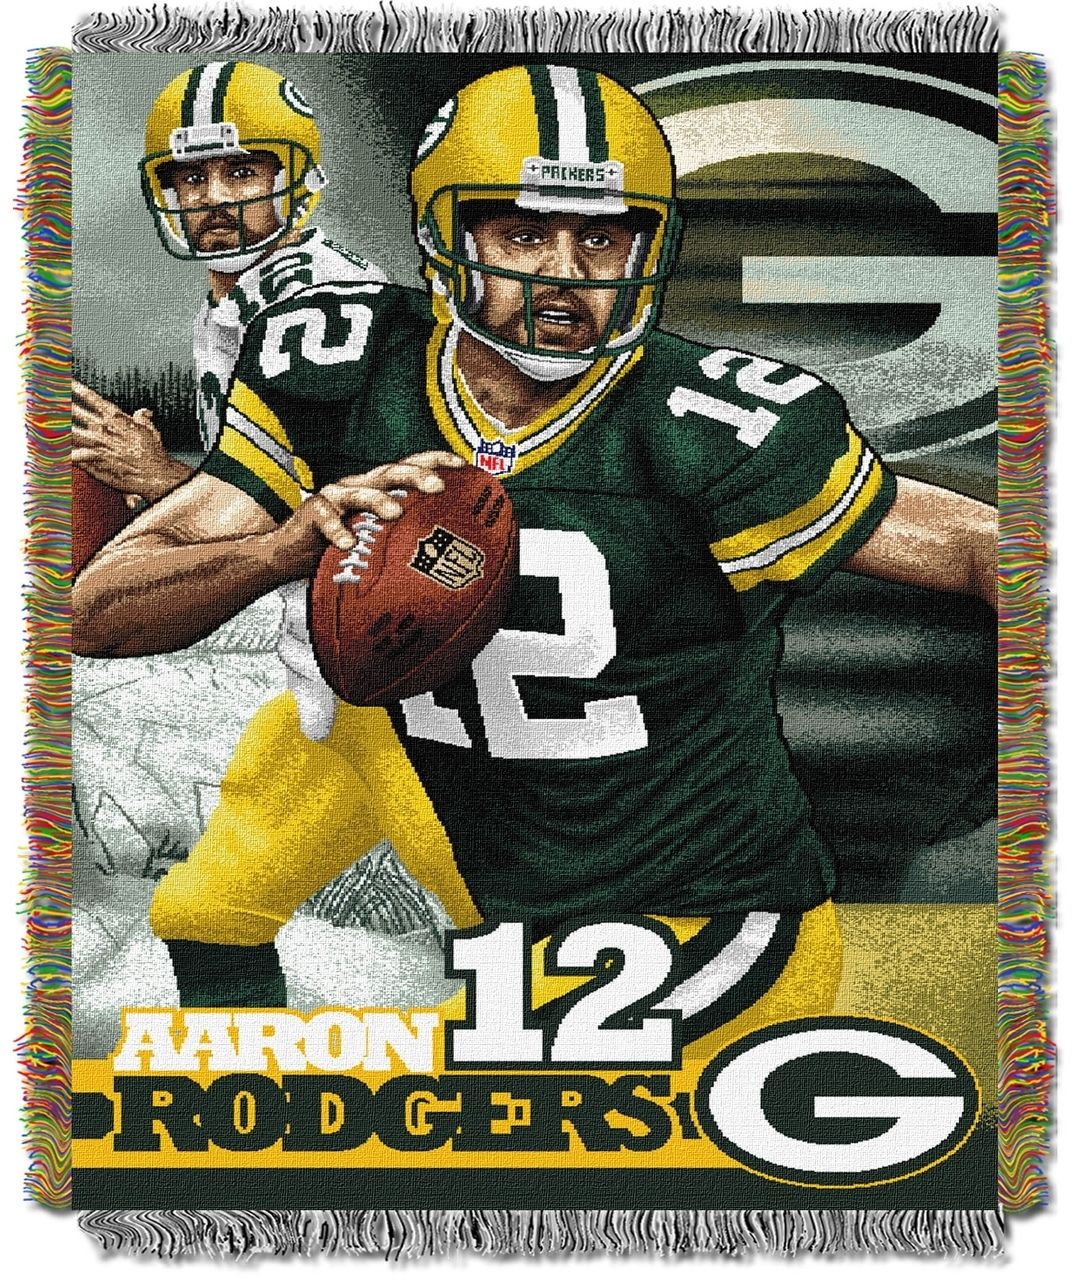 Aaron Rodgers Green Bay Packers Nfl Players Woven Tapestry Throw Green Bay Packers Players Rodgers Green Bay Rodgers Packers